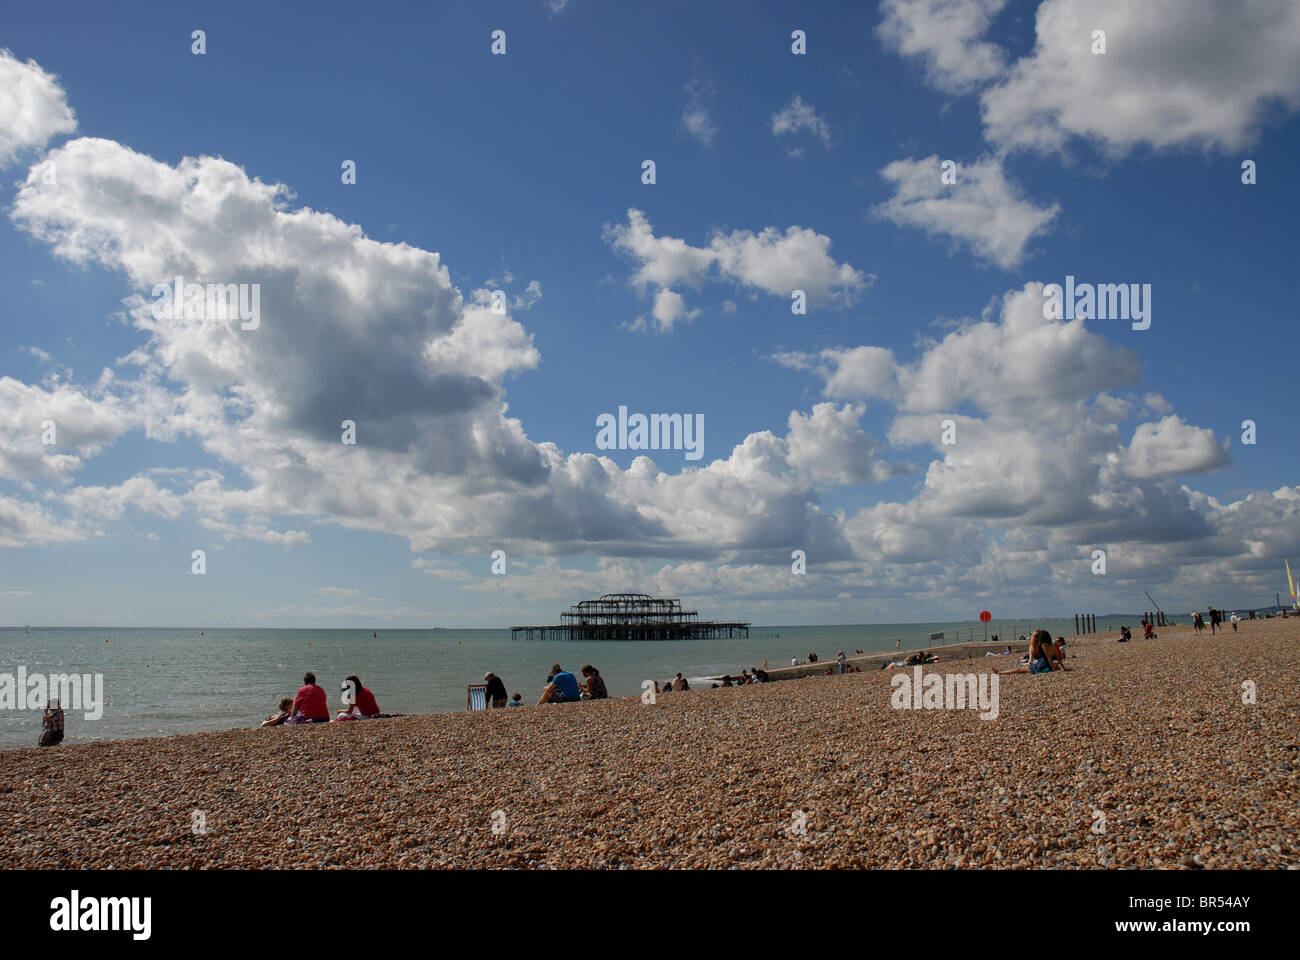 Brighton's stony beach on a sunny day and the ruined pier in the background with fluffy clouds - Stock Image